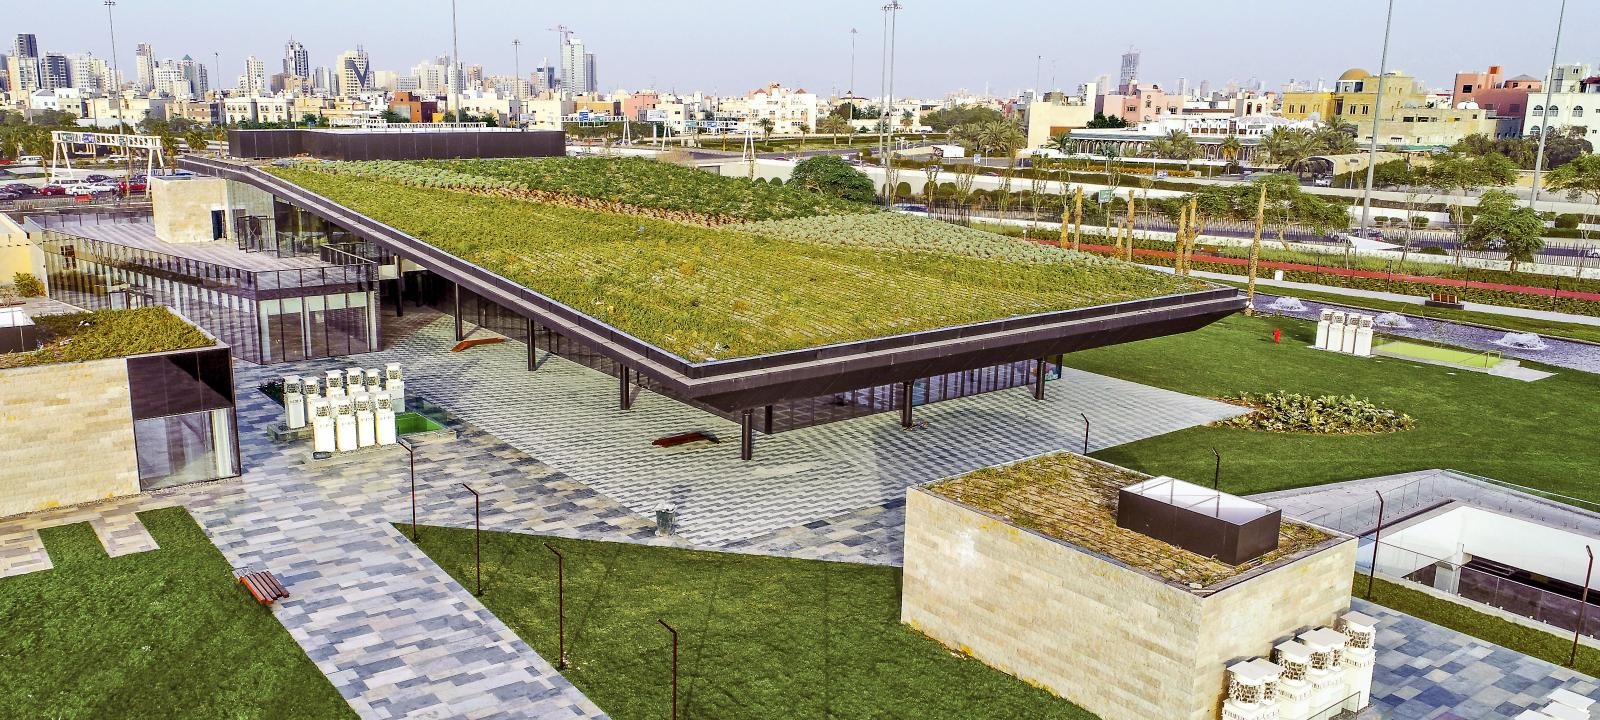 Green roofs in a park with walkways and lawn